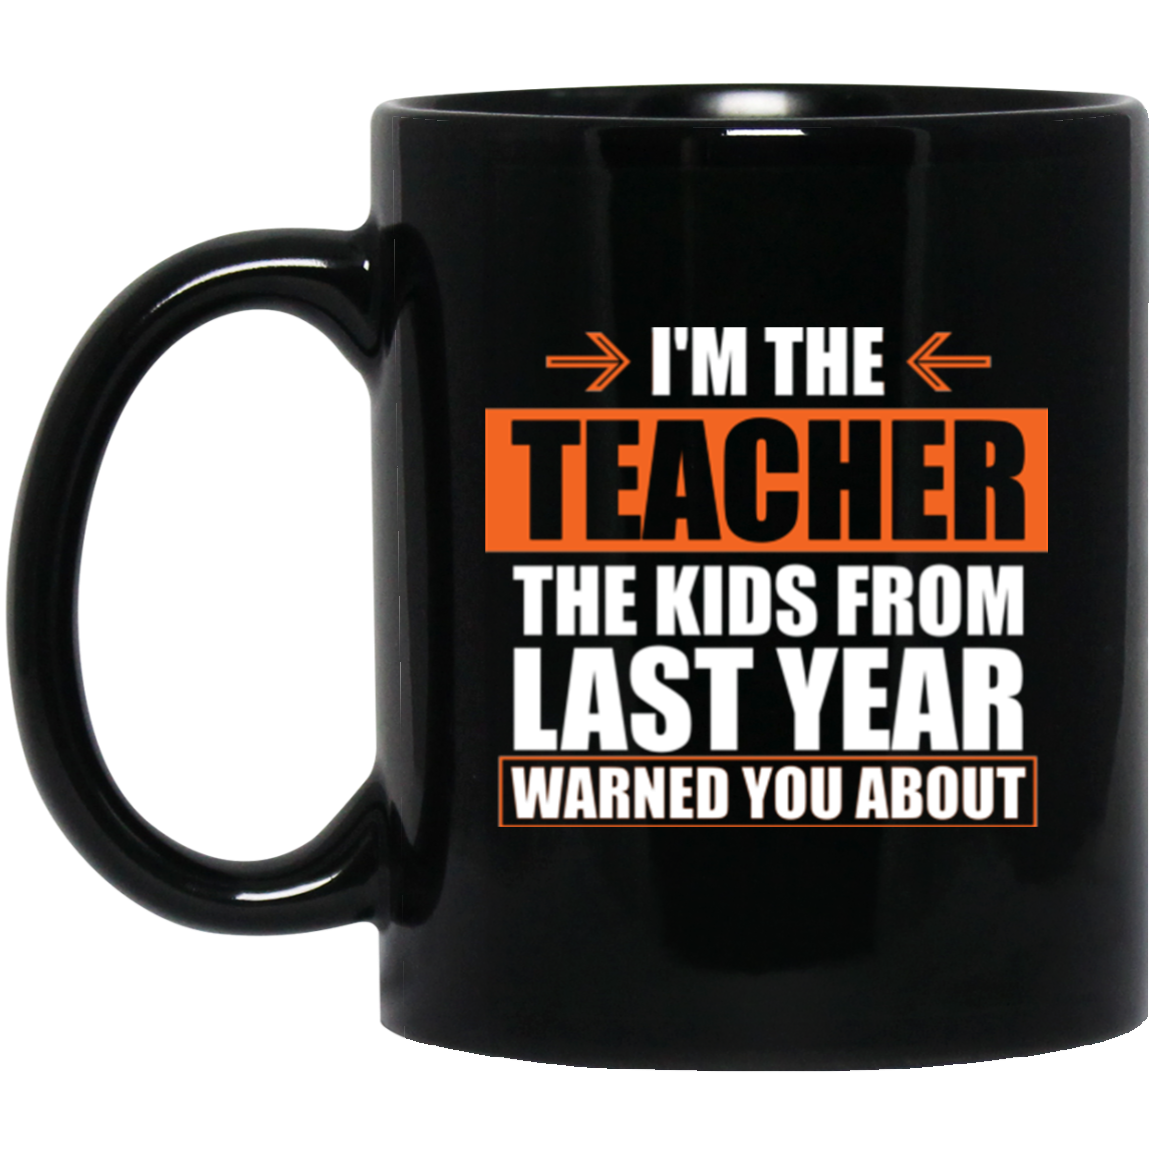 I'm The Teacher The Kids From Last Year Warned You About Coffee Mug